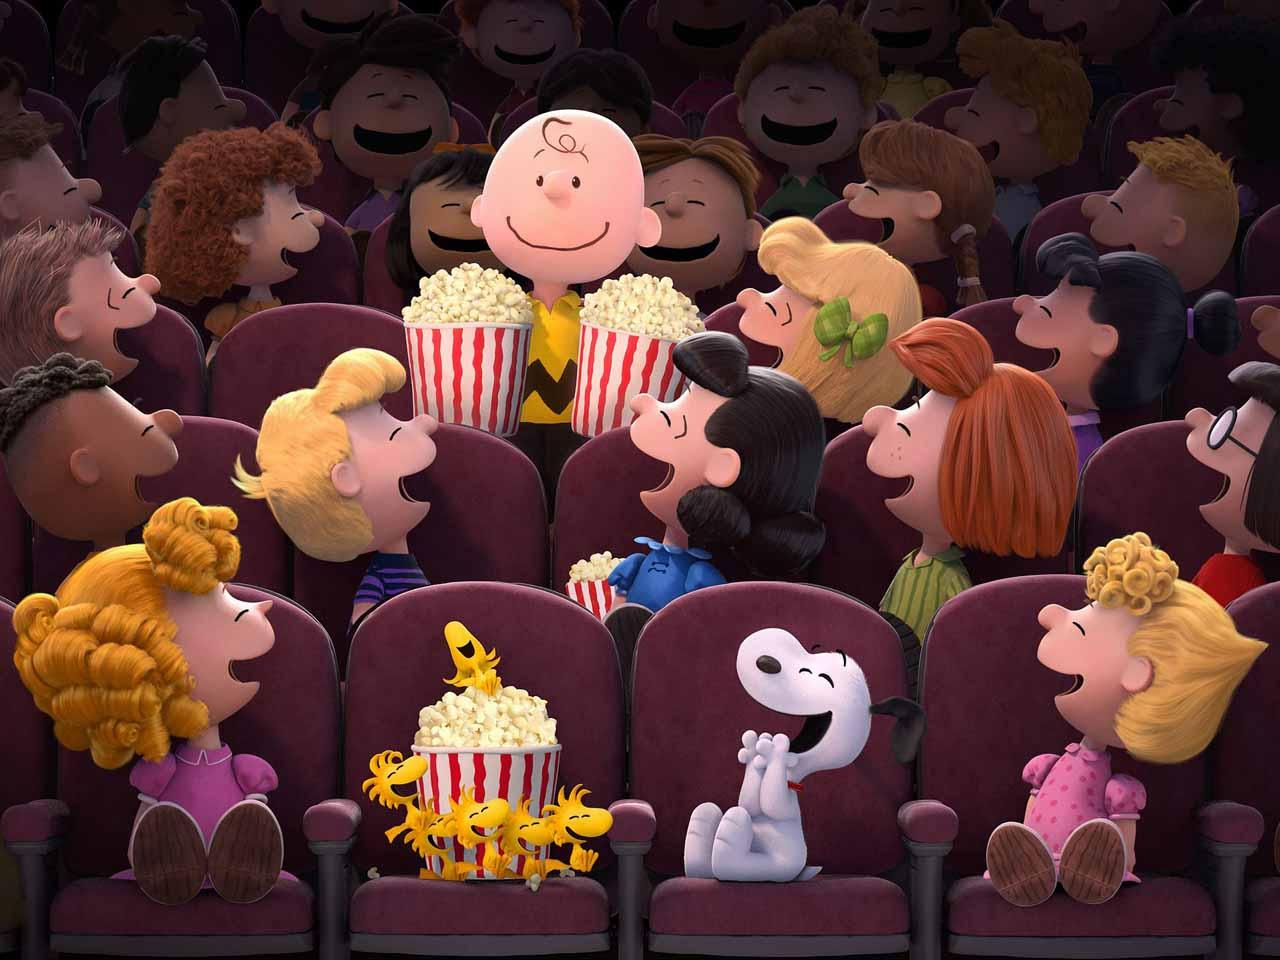 5-new-images-from-the-animated-peanuts-film5